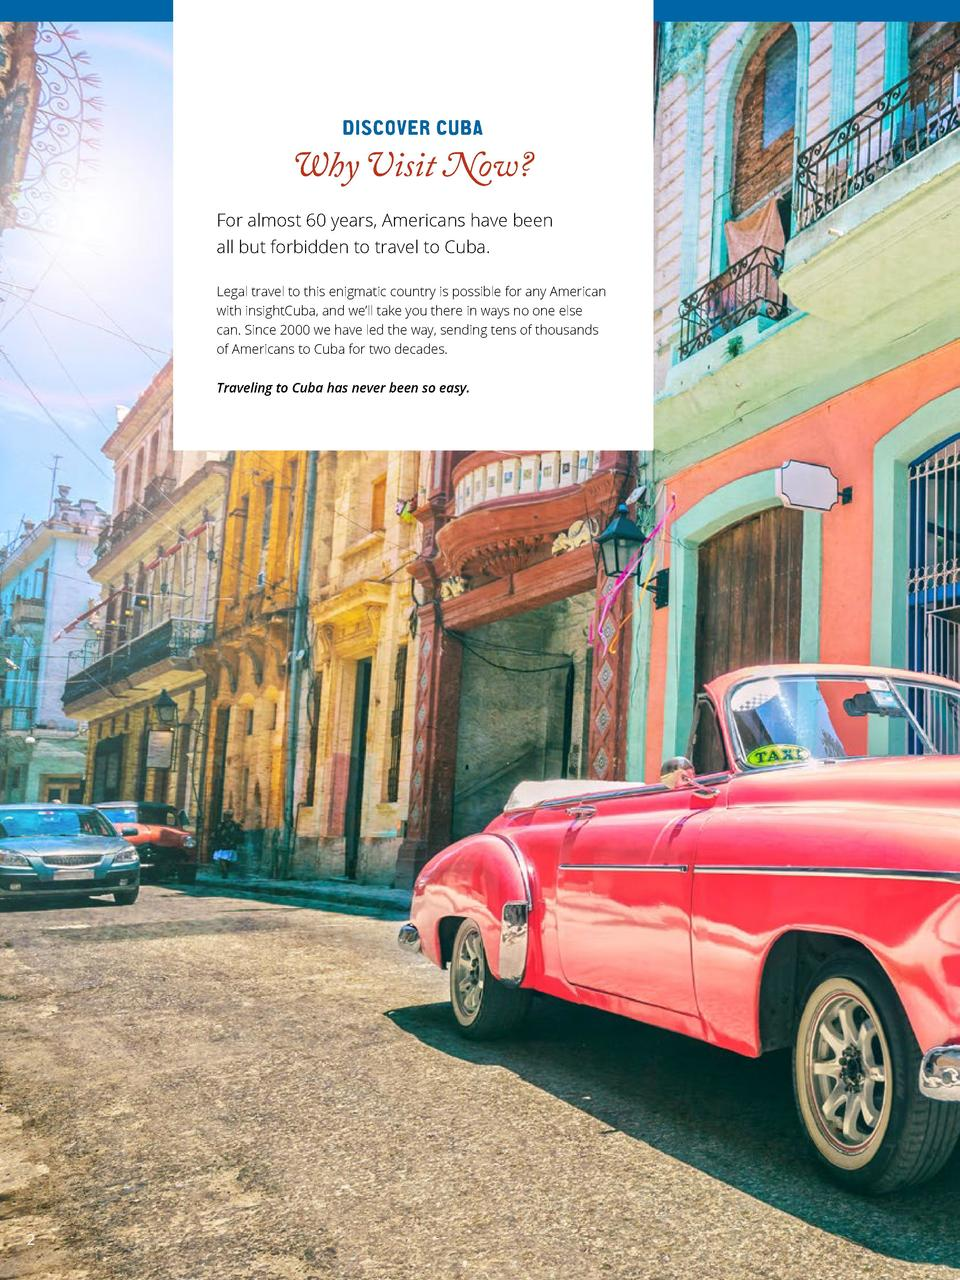 DISCOVER CUBA  Why Visit Now  For almost 60 years, Americans have been all but forbidden to travel to Cuba. Legal travel t...